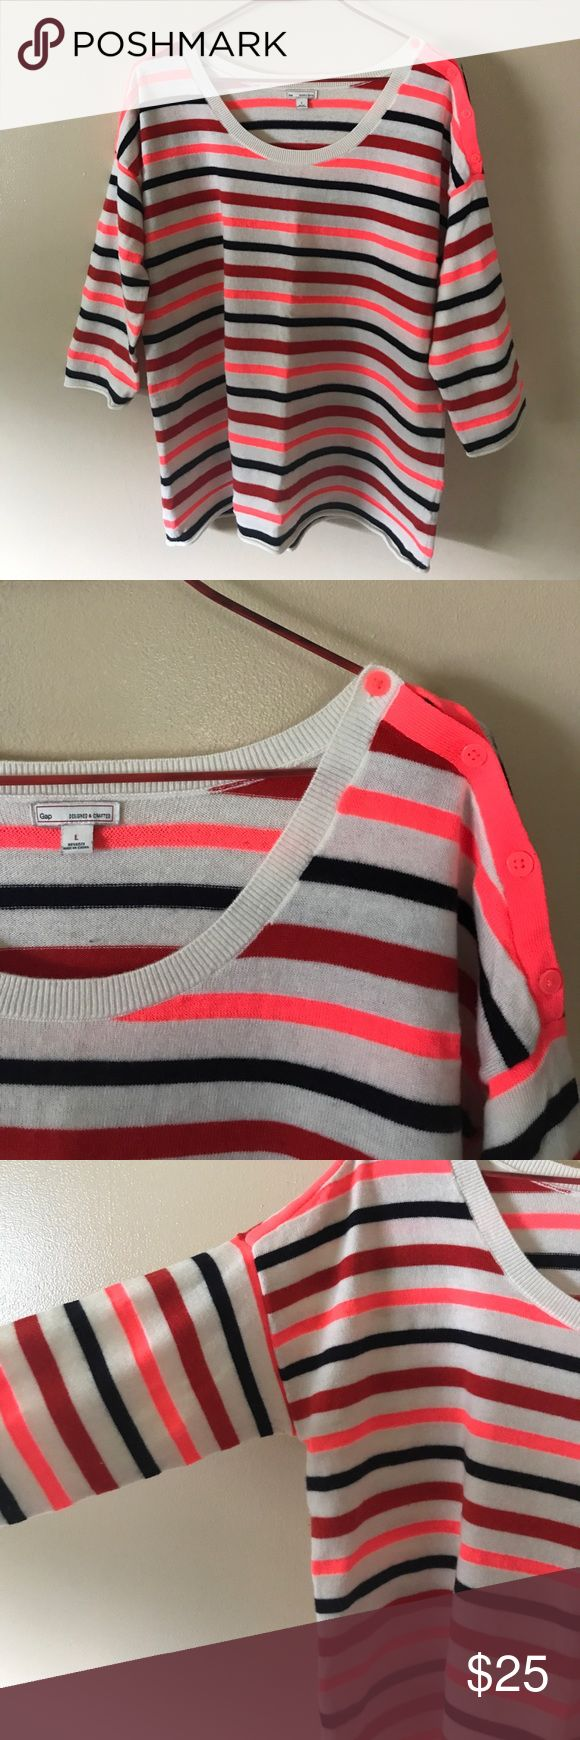 Gap neon striped boat neck sweater Super soft and cozy, this wool blend boatneck sweater is great for fall. Button accent across one shoulder, three quarter length sleeves. In excellent condition. GAP Sweaters